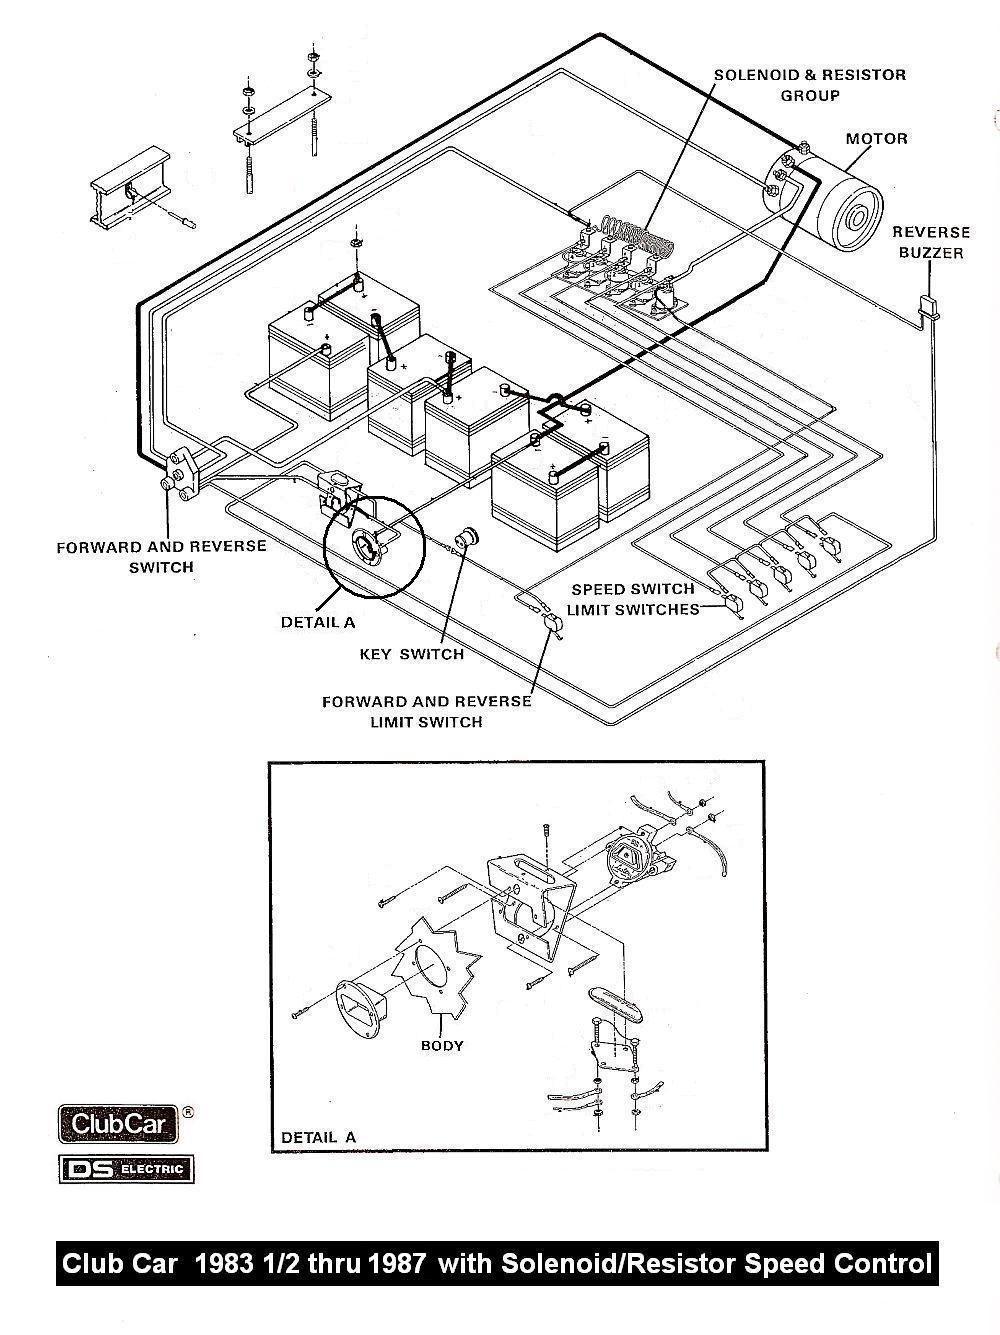 0e8d045370be7682b159825224221faa vintagegolfcartparts com *freezer & crock pot* pinterest club car gas wiring diagram at readyjetset.co